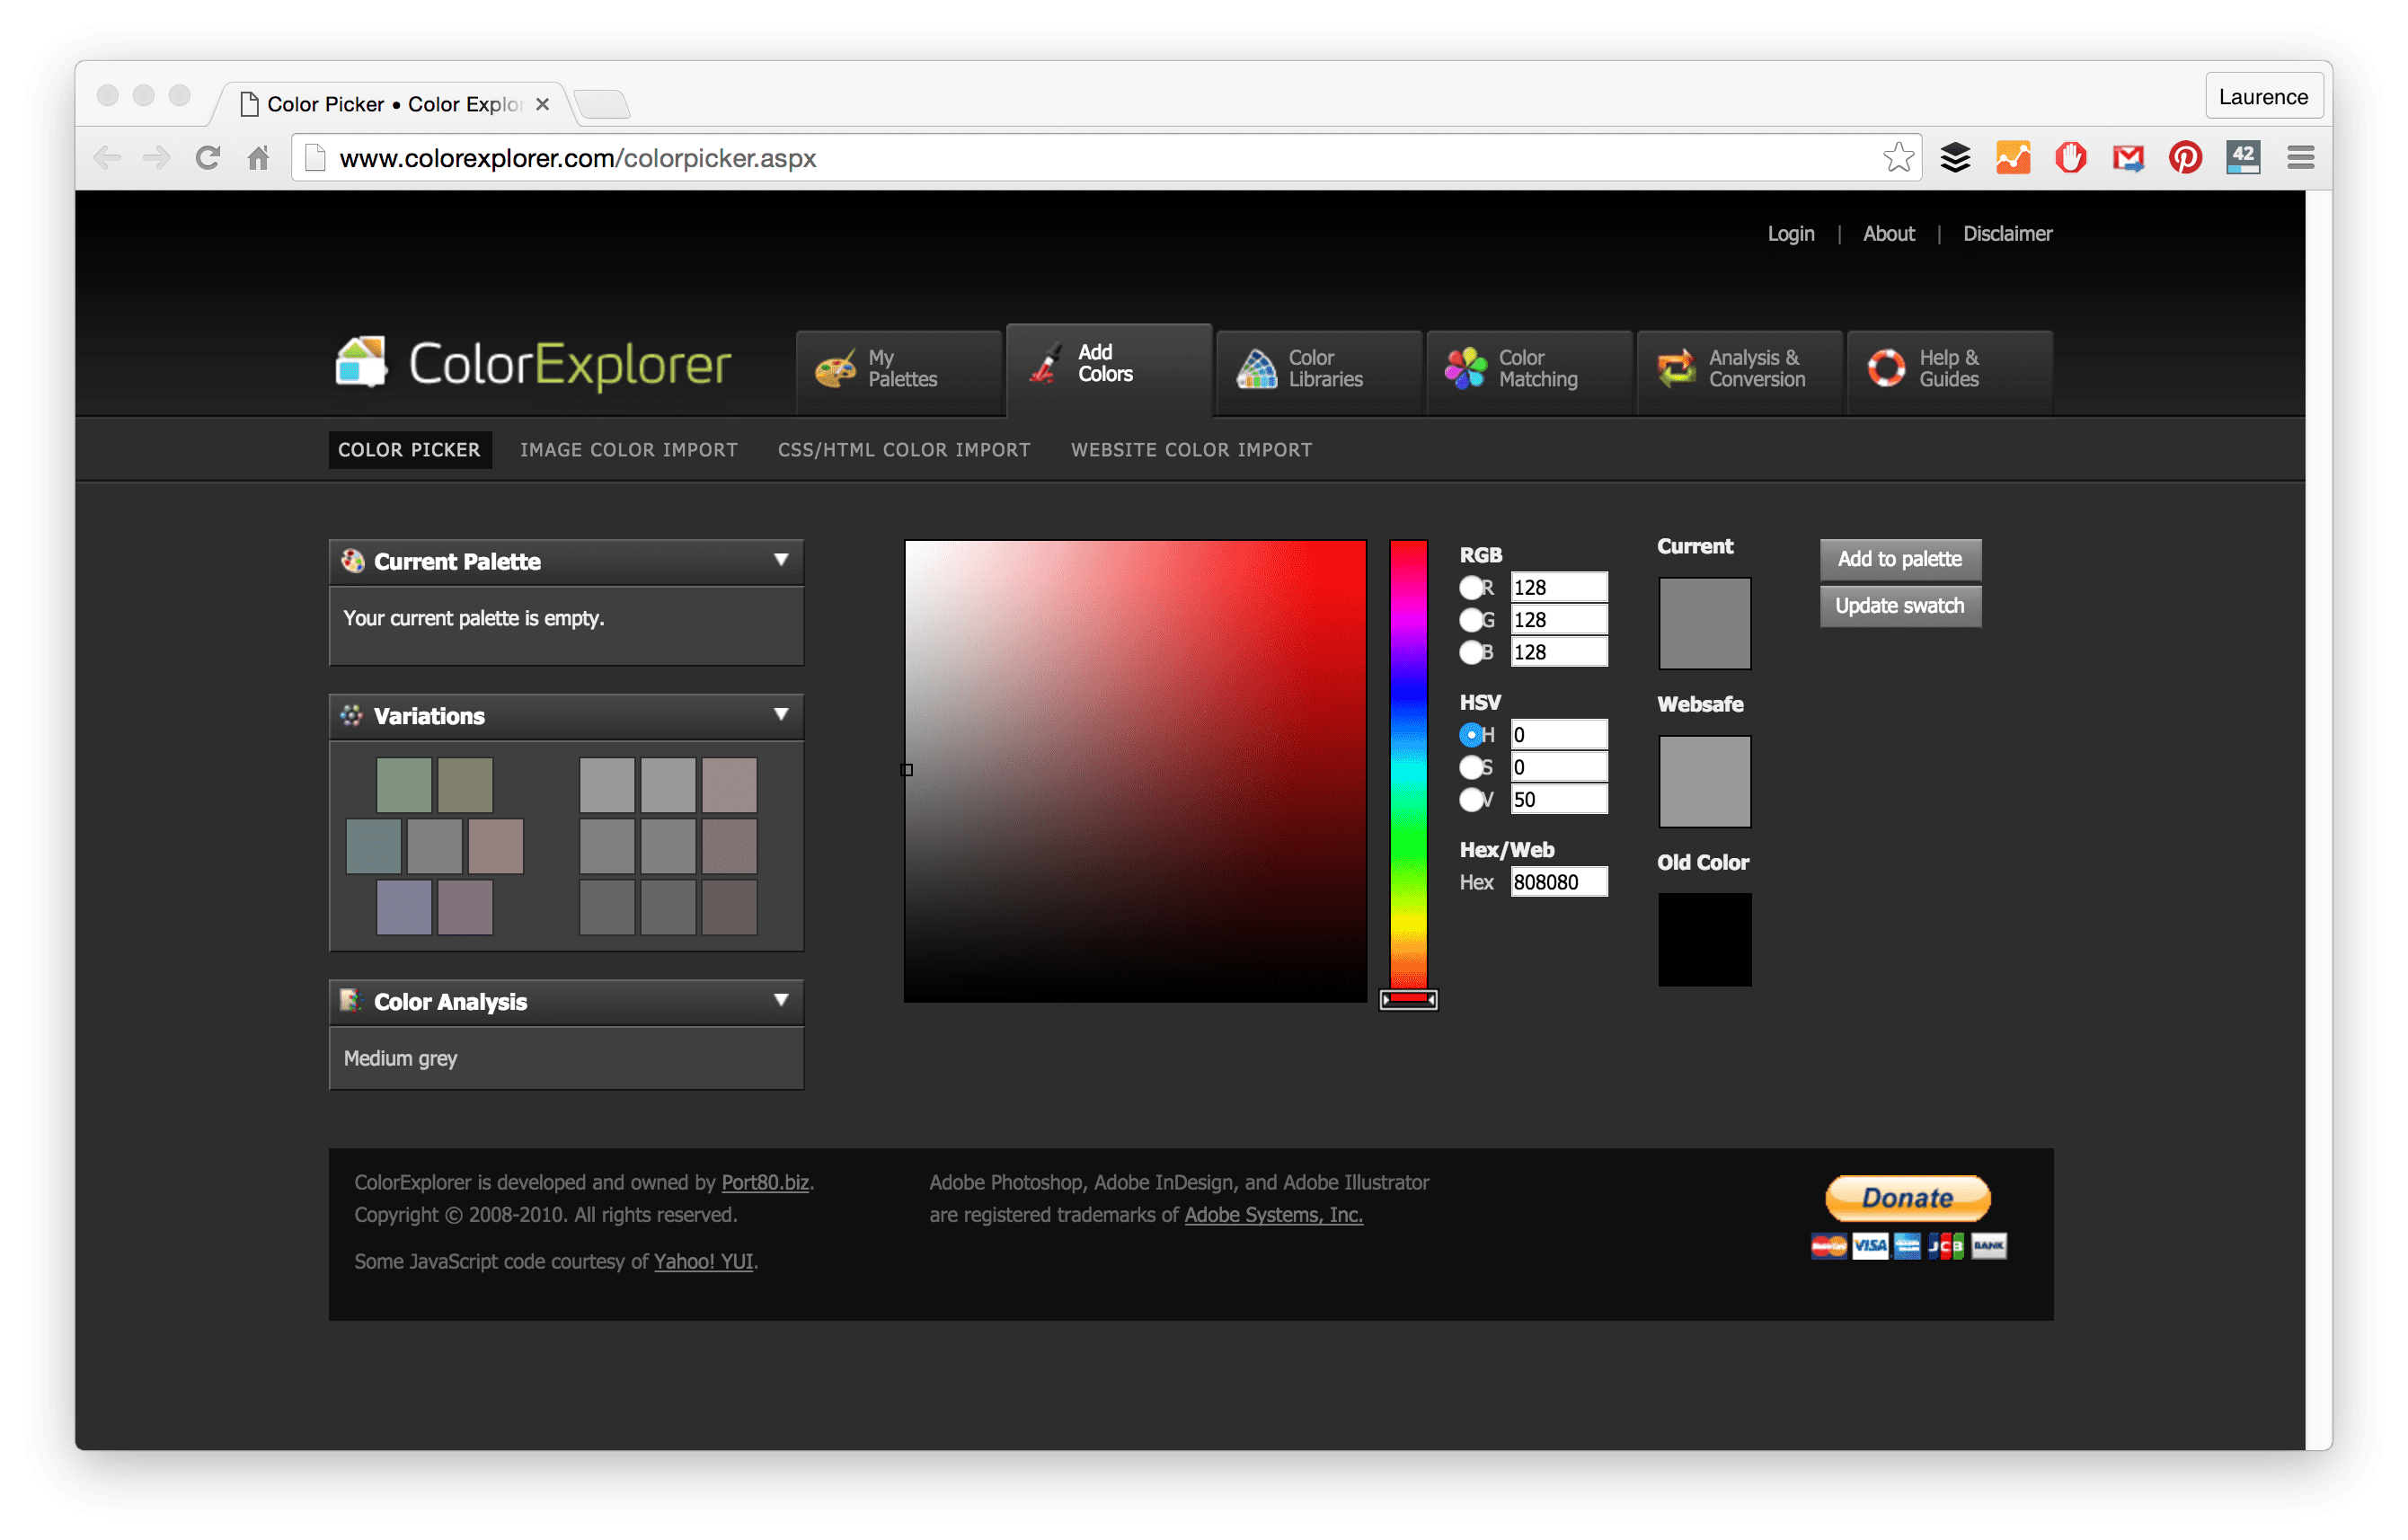 Online color viewer hex - With Colorexplorer There Are Four Ways To Generate Color Schemes These Include Color Picker Image Color Import Css Html Color Import And Website Color